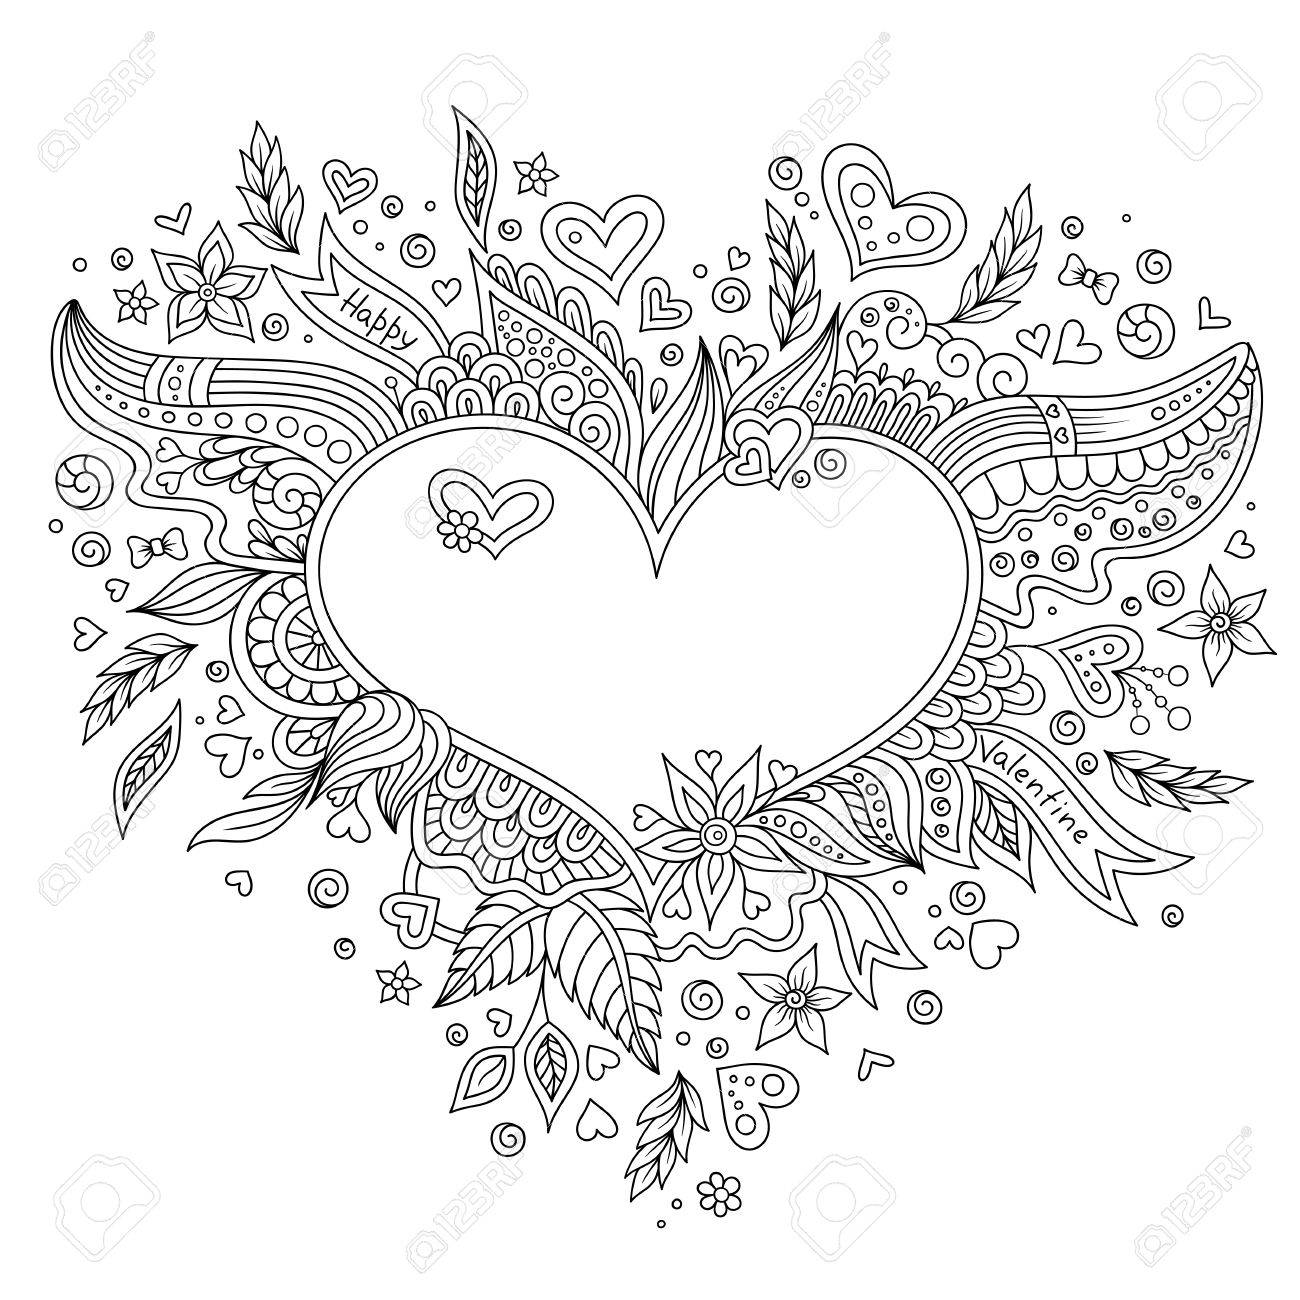 coloring page flower heart st valentines day coloring page with details isolated on white background